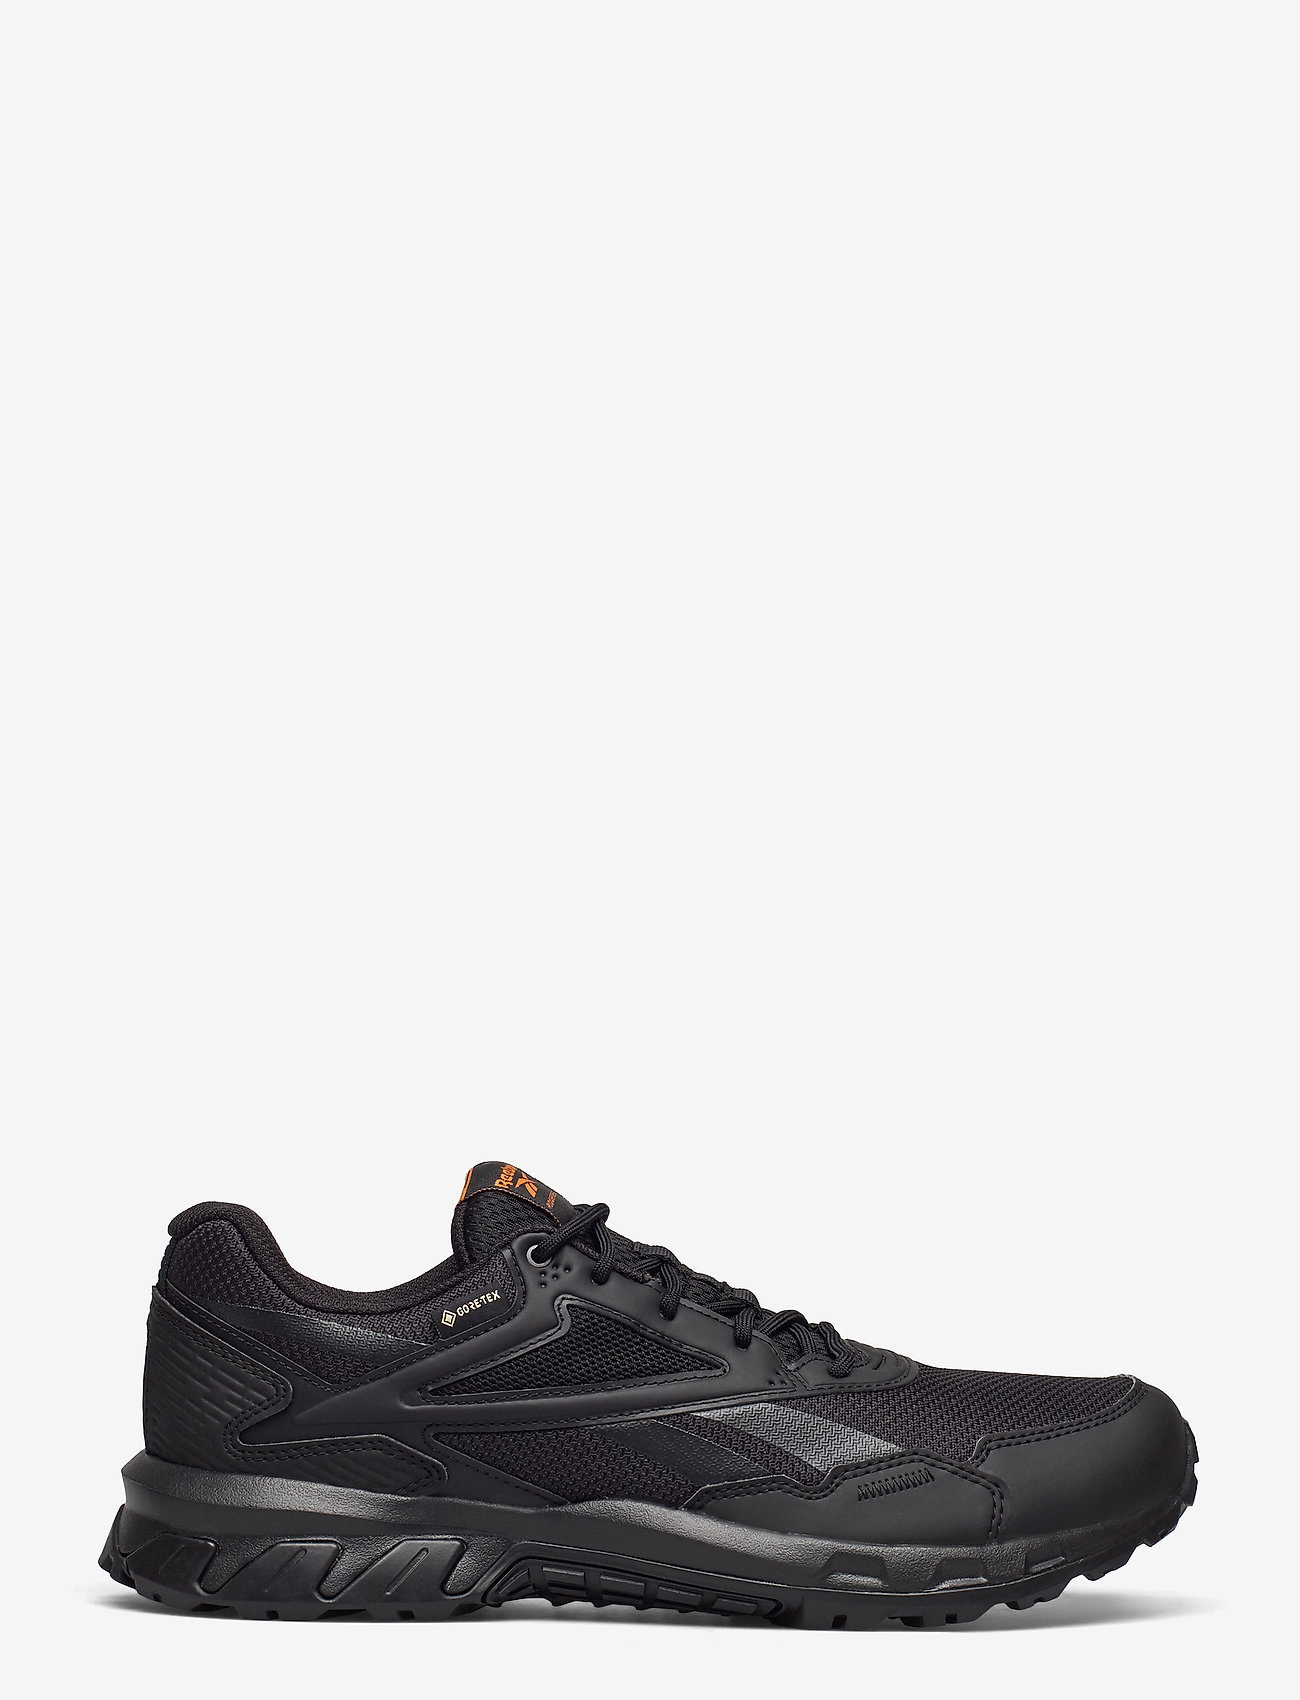 Ridgerider 5 Gtx (Black/black/hivior) - Reebok Performance hpuW9Q